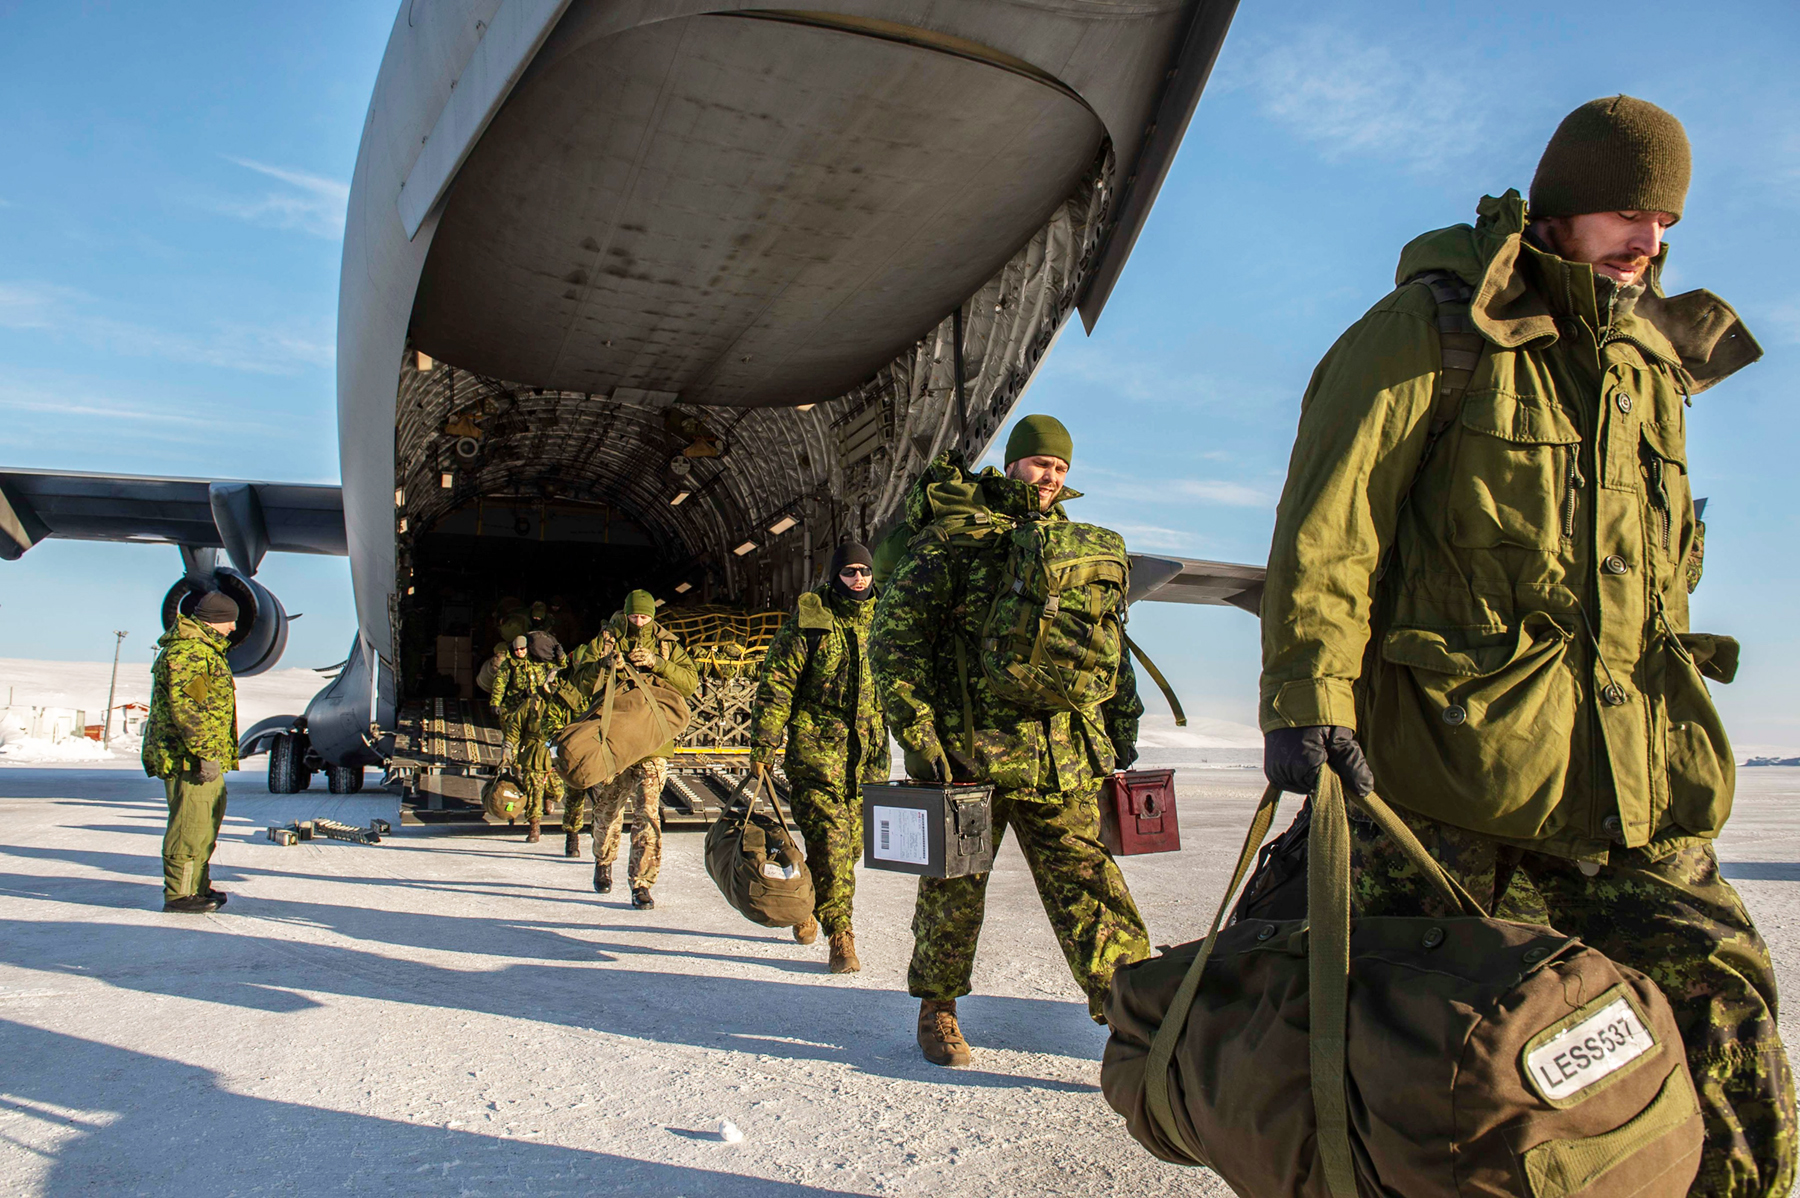 People wearing disruptive pattern uniforms and carrying a variety of bags and gear disembark a large cargo aircraft on a packed snow runway.